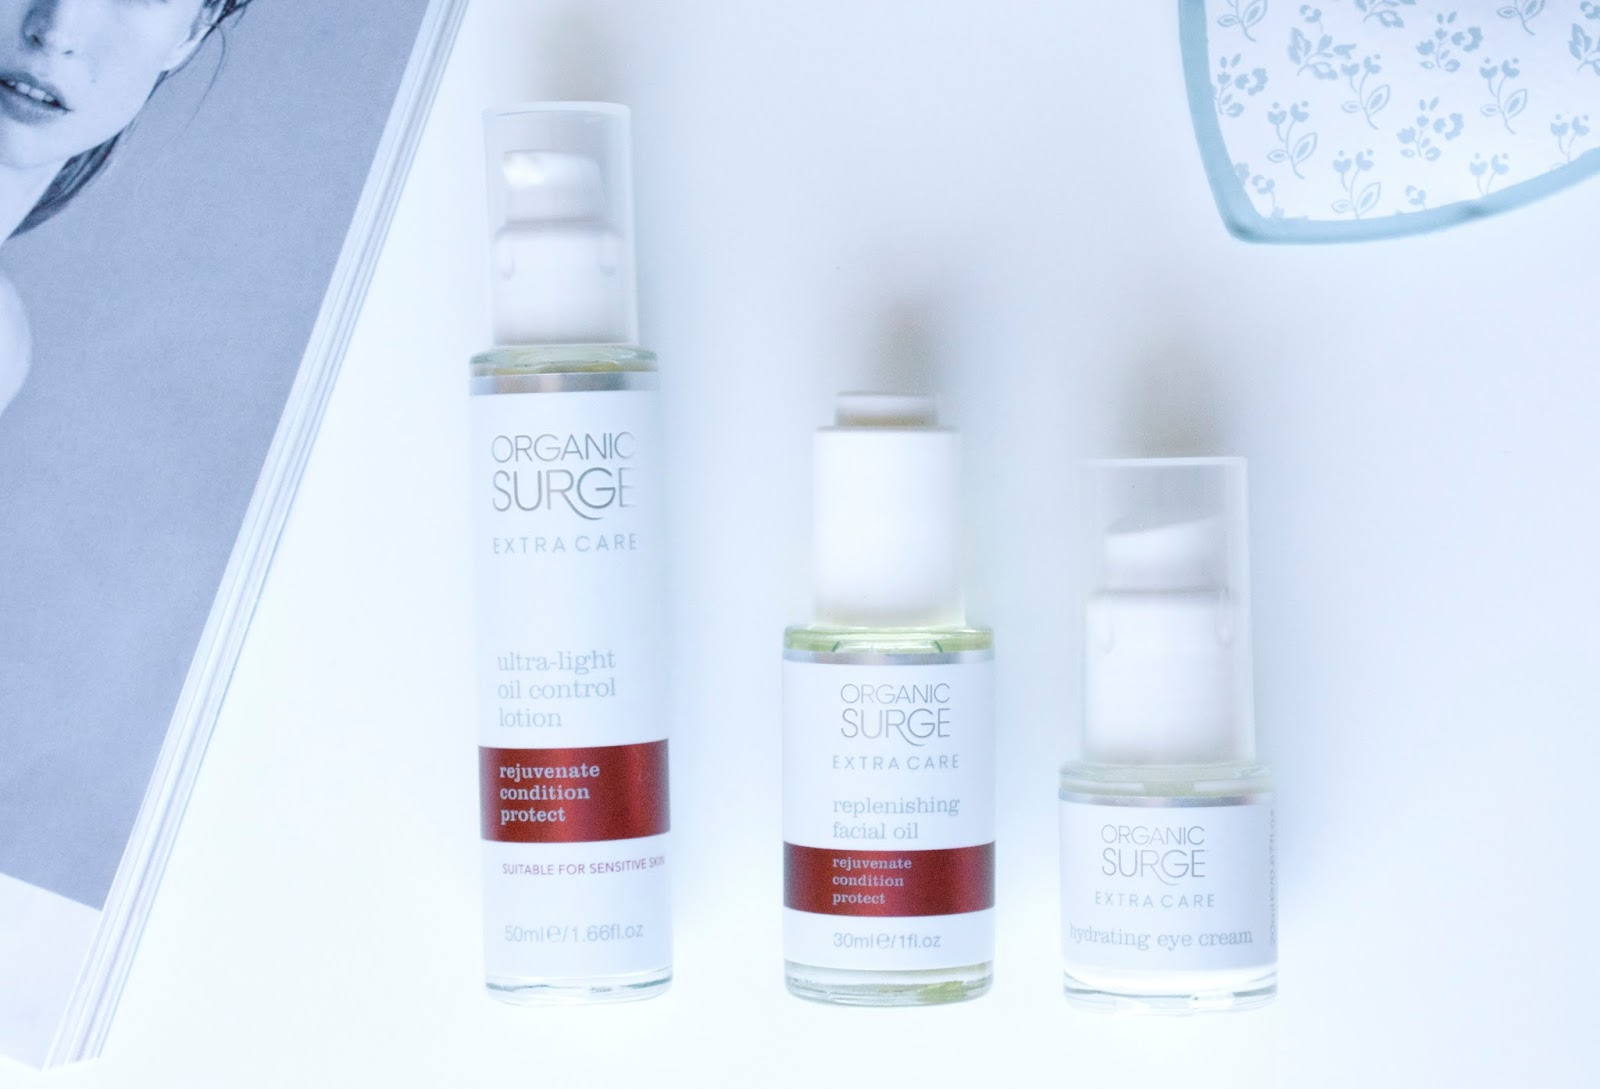 Organic Surge Extra Care, Skincare, Moisturiser, Beauty, Eye Cream